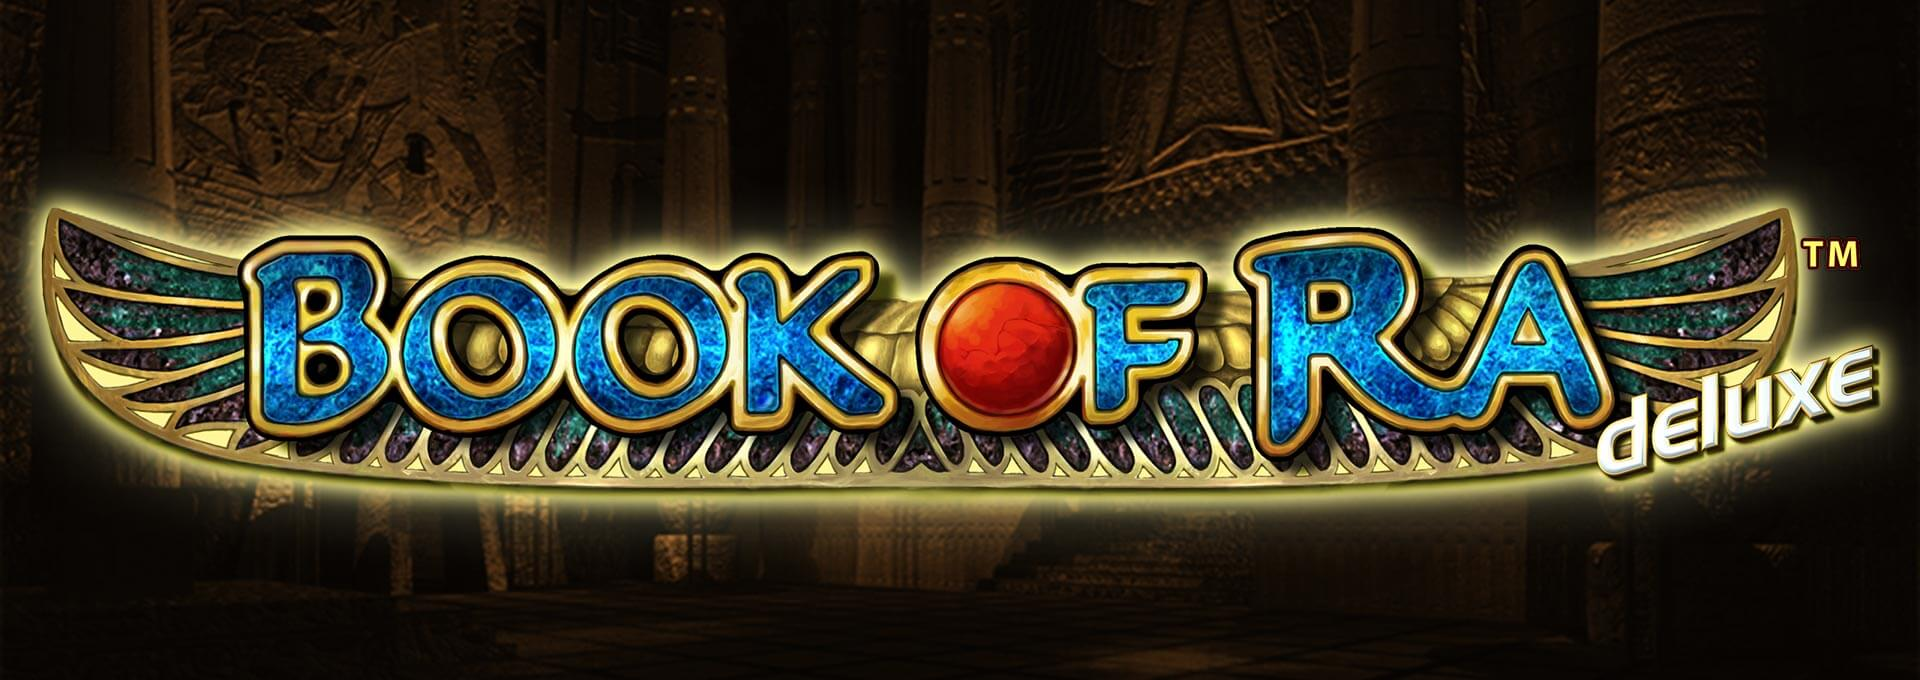 free casino games online  book of ra free download